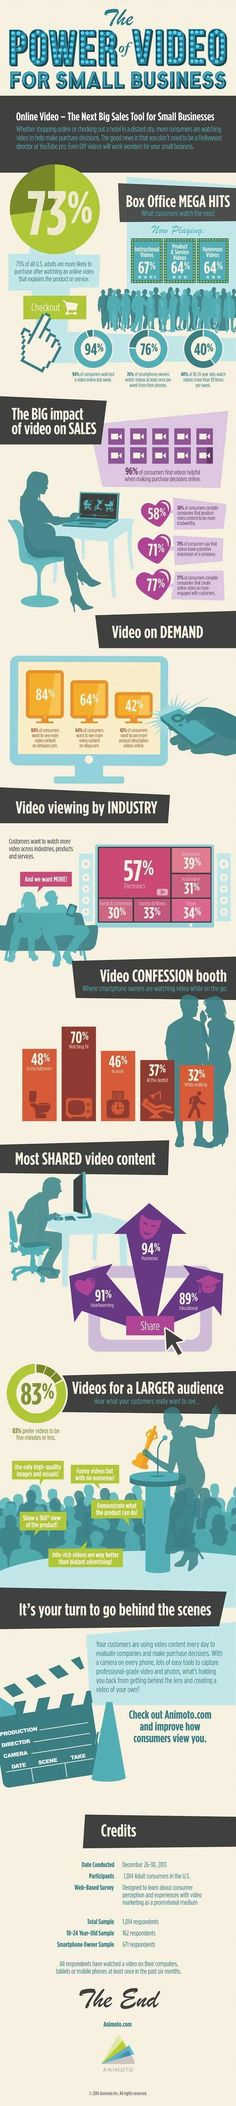 Content - The Power of Video for Businesses [Infographic] : MarketingProfs Article